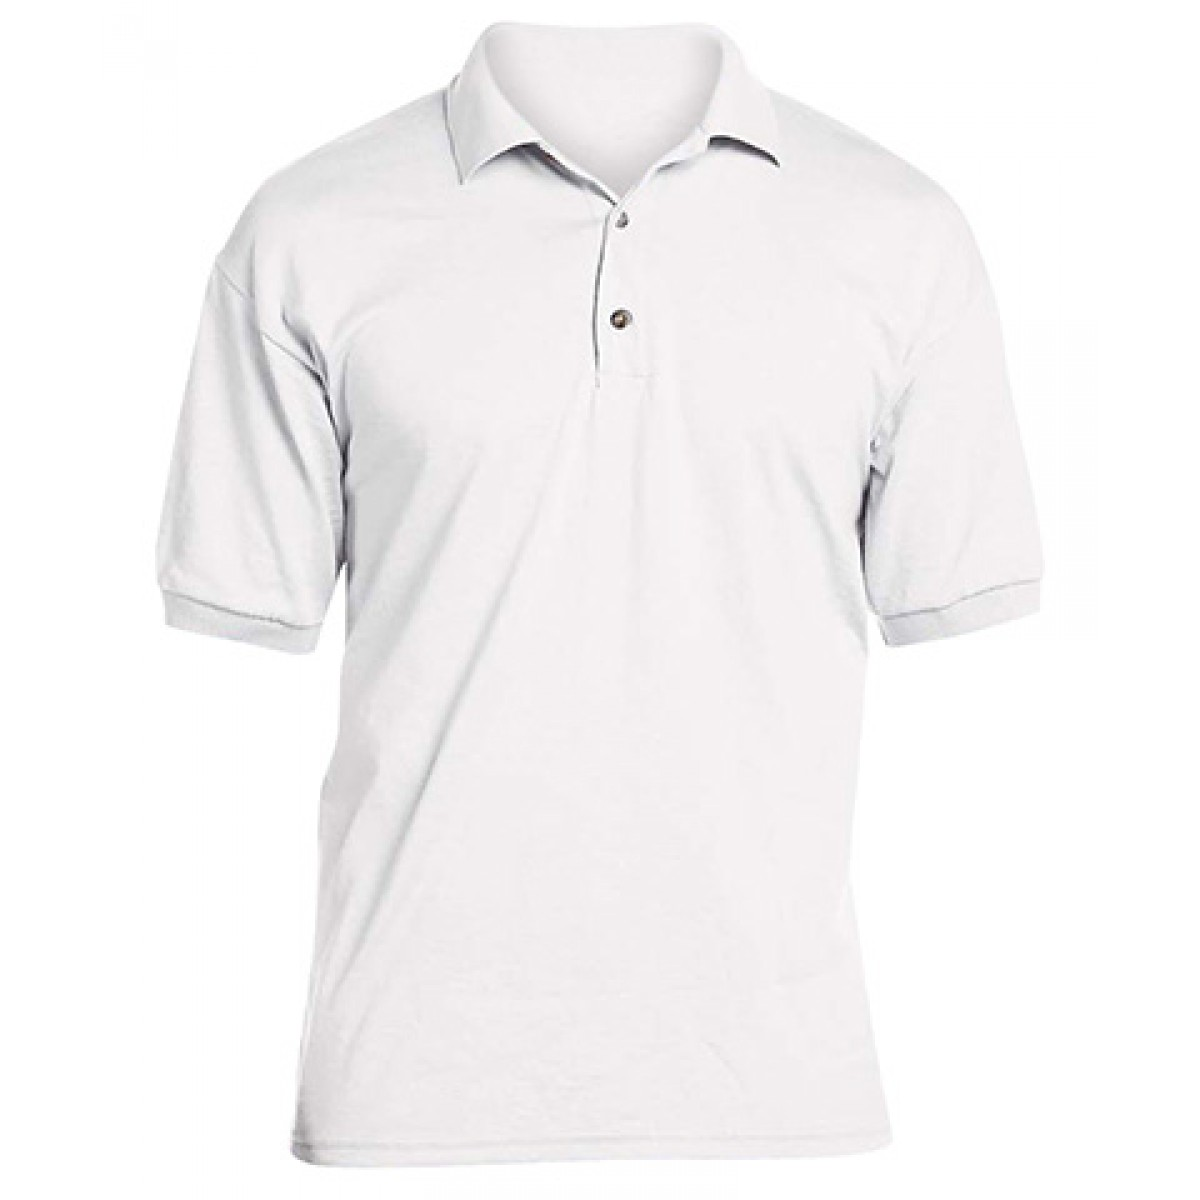 Jersey Polo 50/50 -White-XL